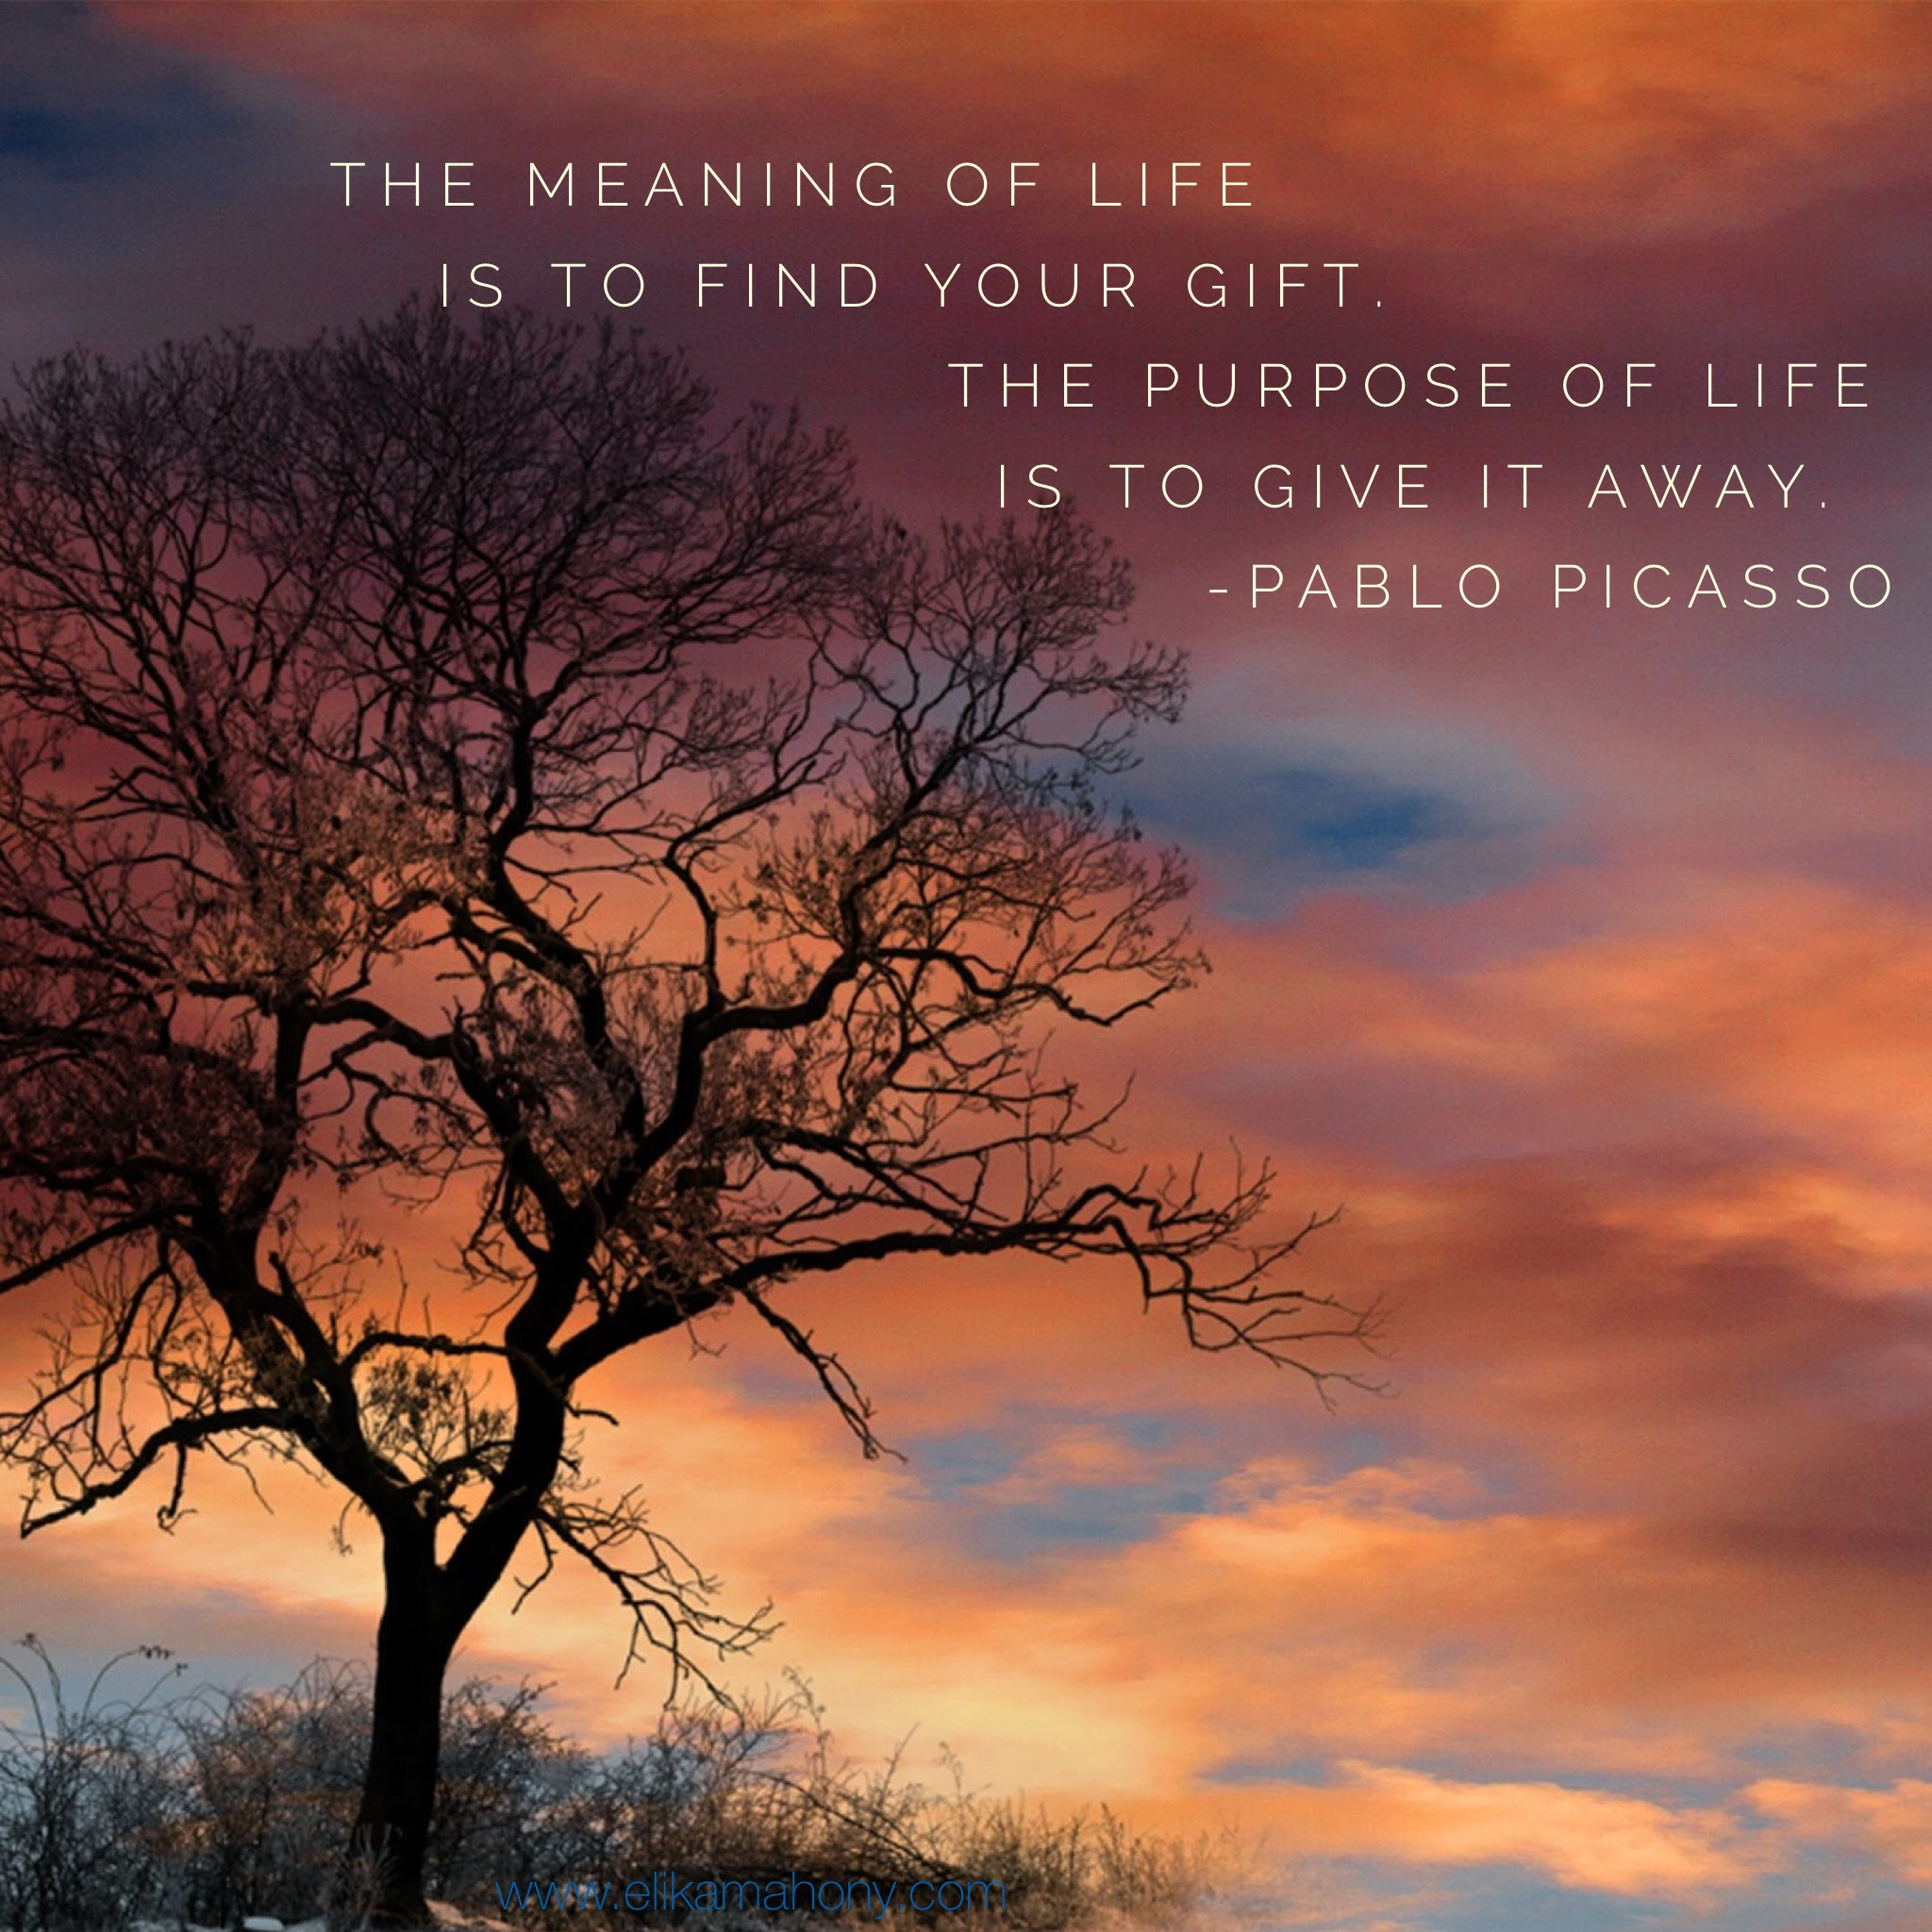 The Meaning Of Life Elika Mahony Vocalist Composer Pianist